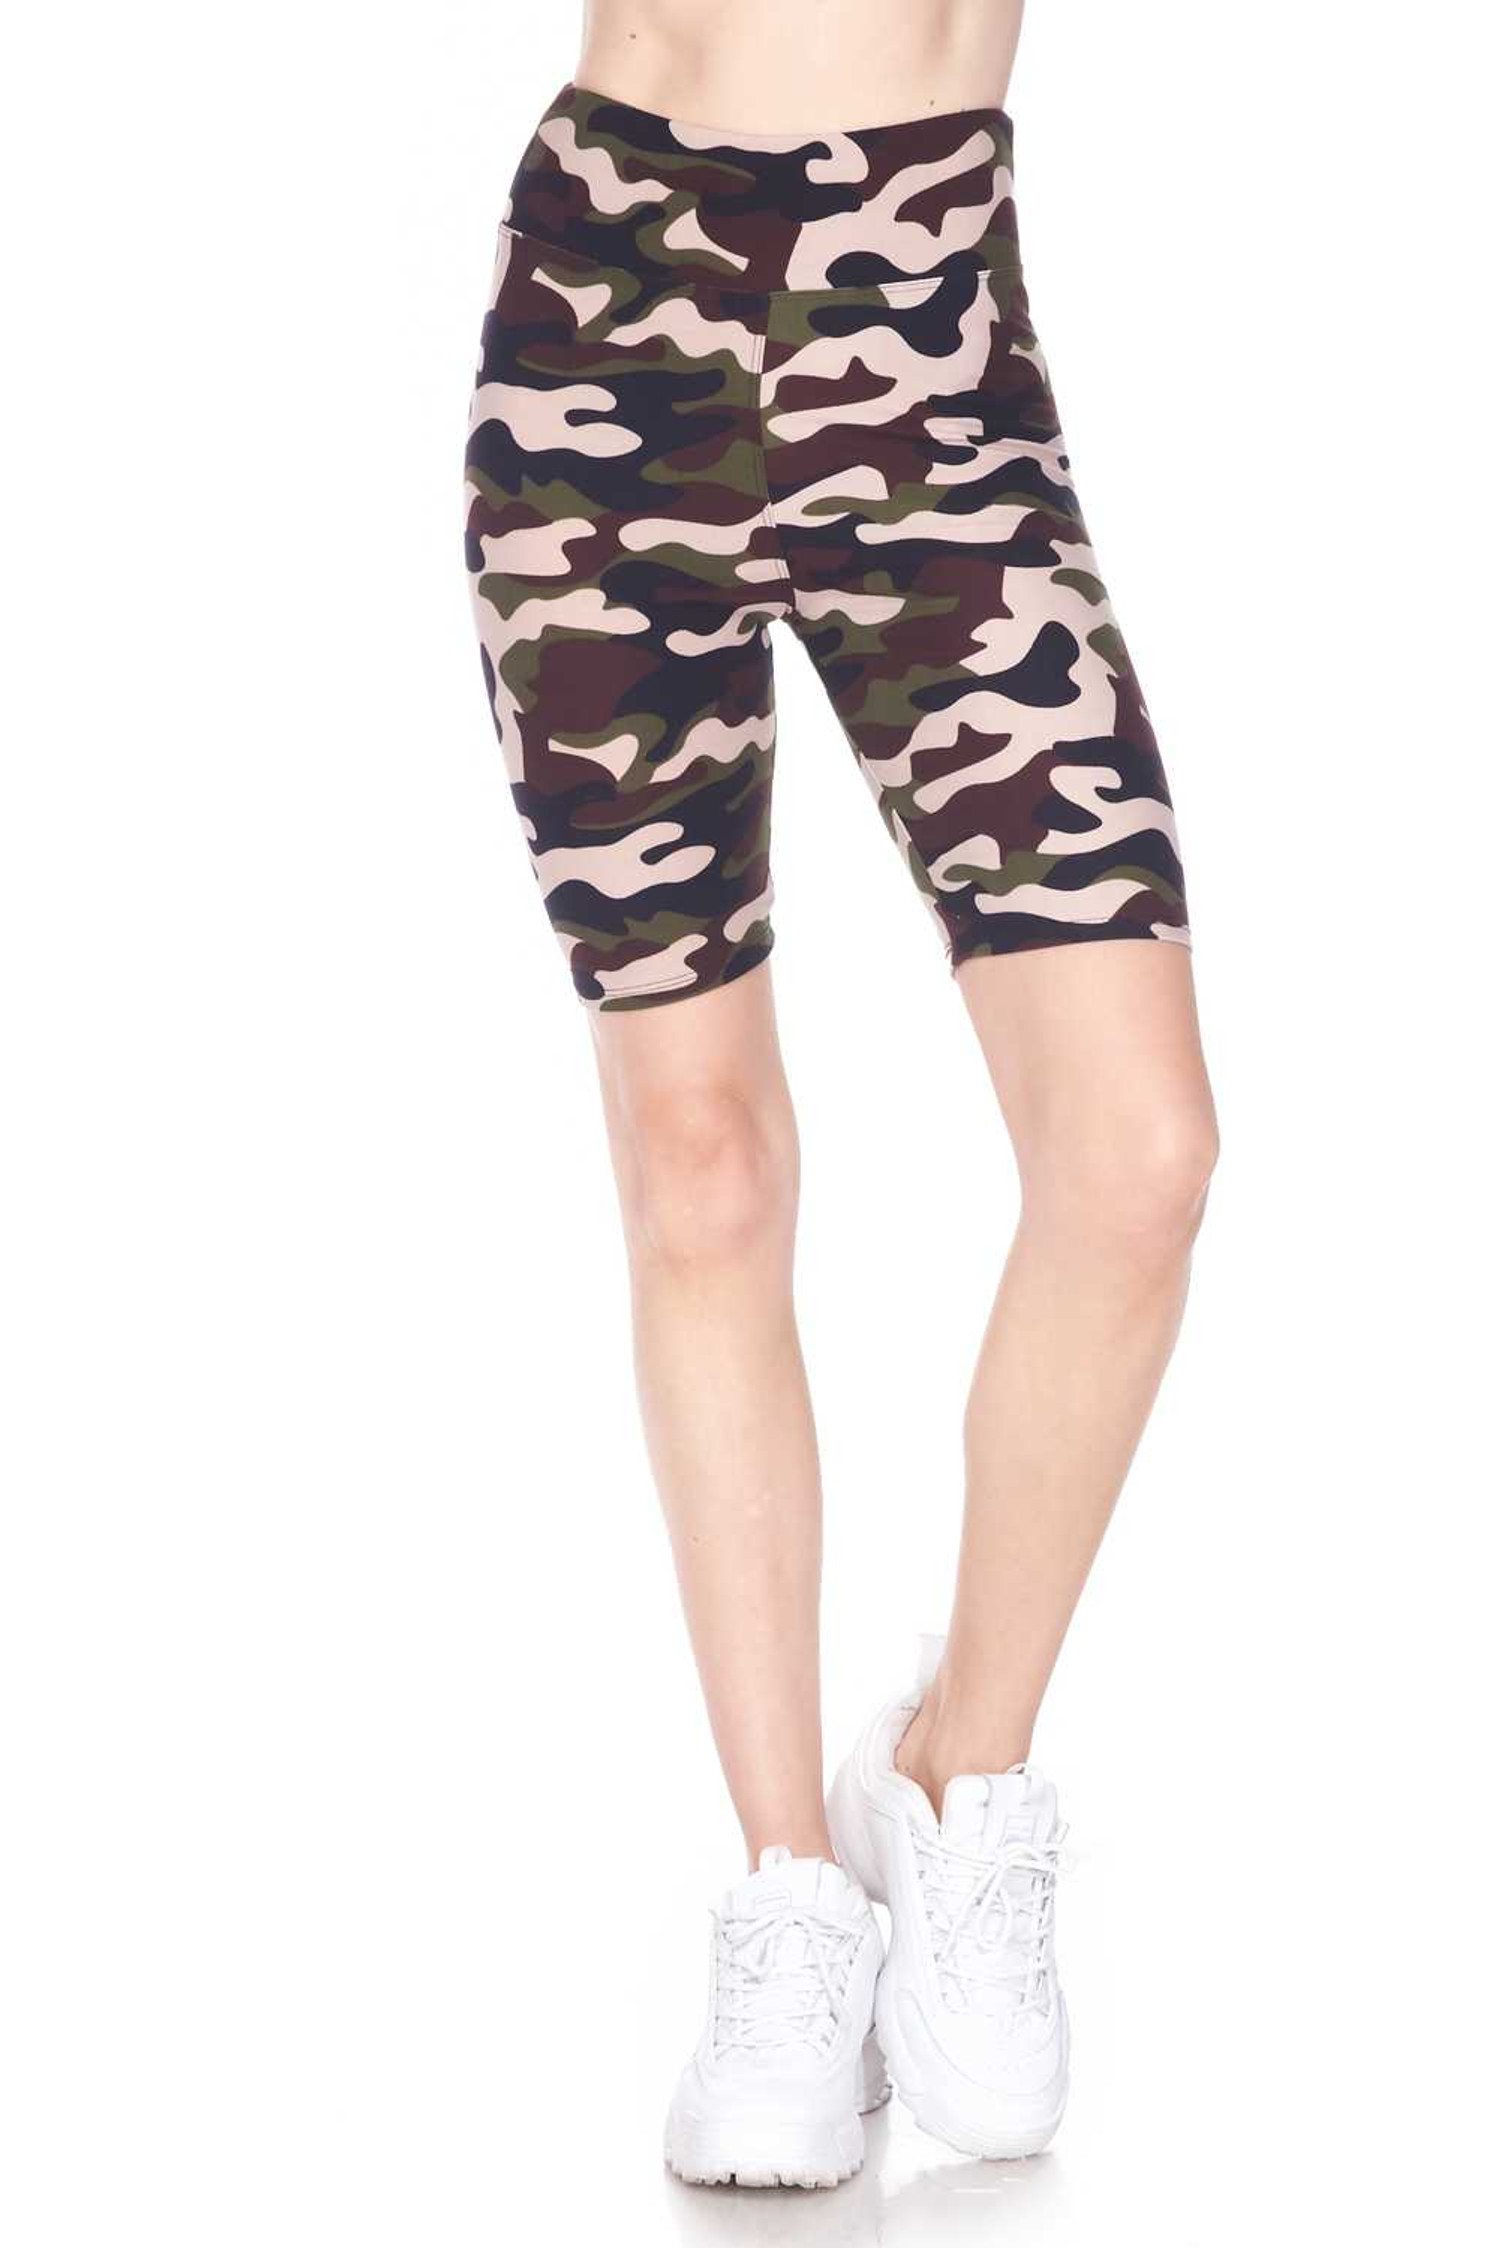 Buttery Soft Flirty Camouflage Biker Plus Size Shorts - 3 Inch Waist Band